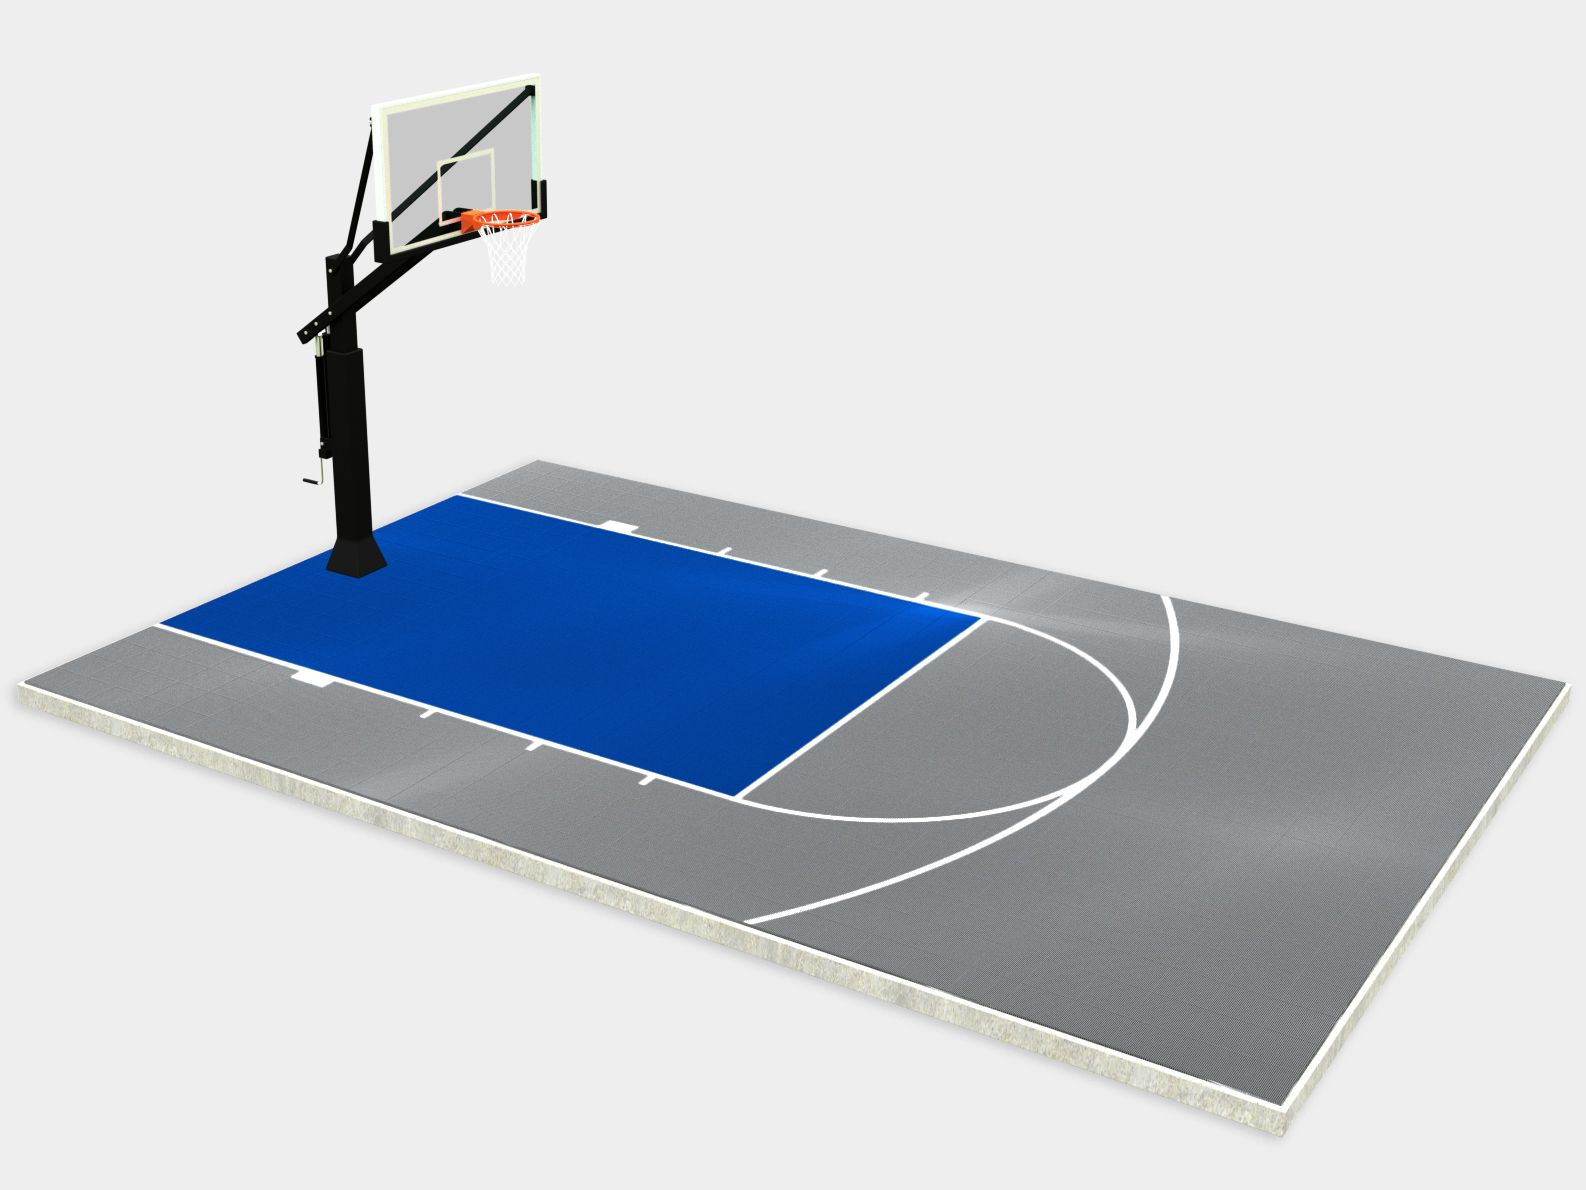 Sand Volleyball Court By Home Google Search Sand Volleyball Court Diagram Backyard Basketball